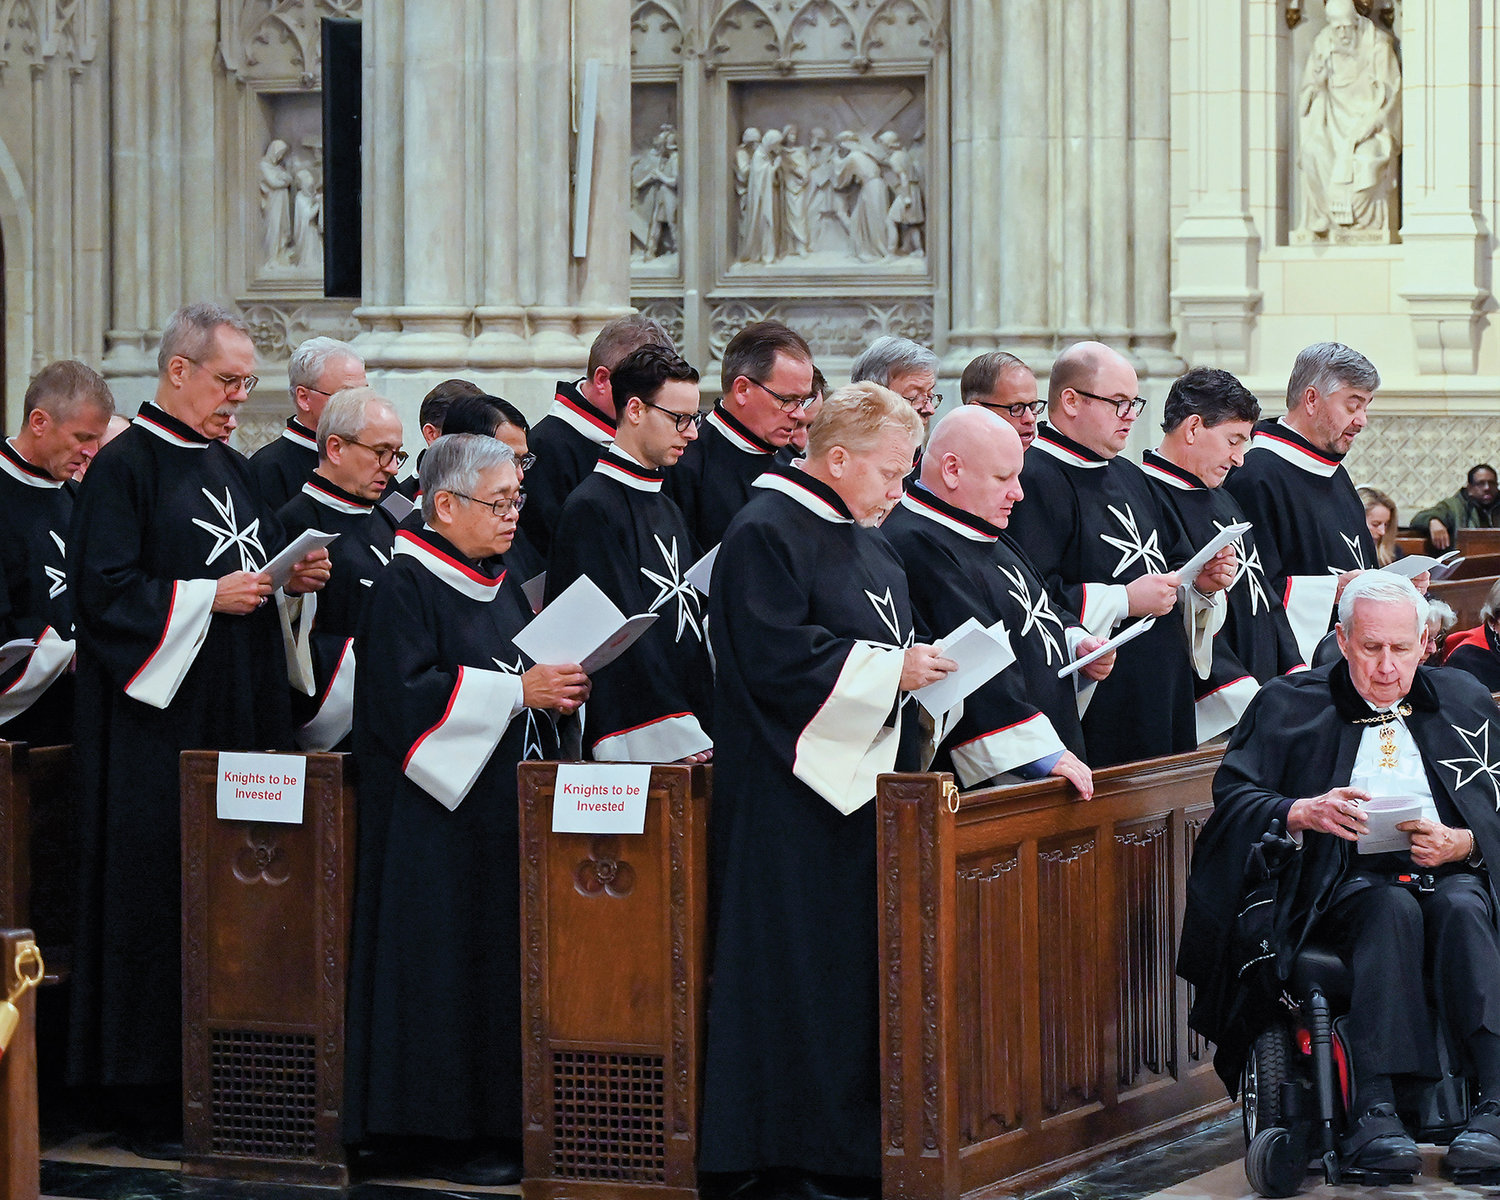 Men to be invested as knights in the Order of Malta stand as their names are called during the Mass and Investiture ceremony Nov. 15 at St. Patrick's Cathedral.